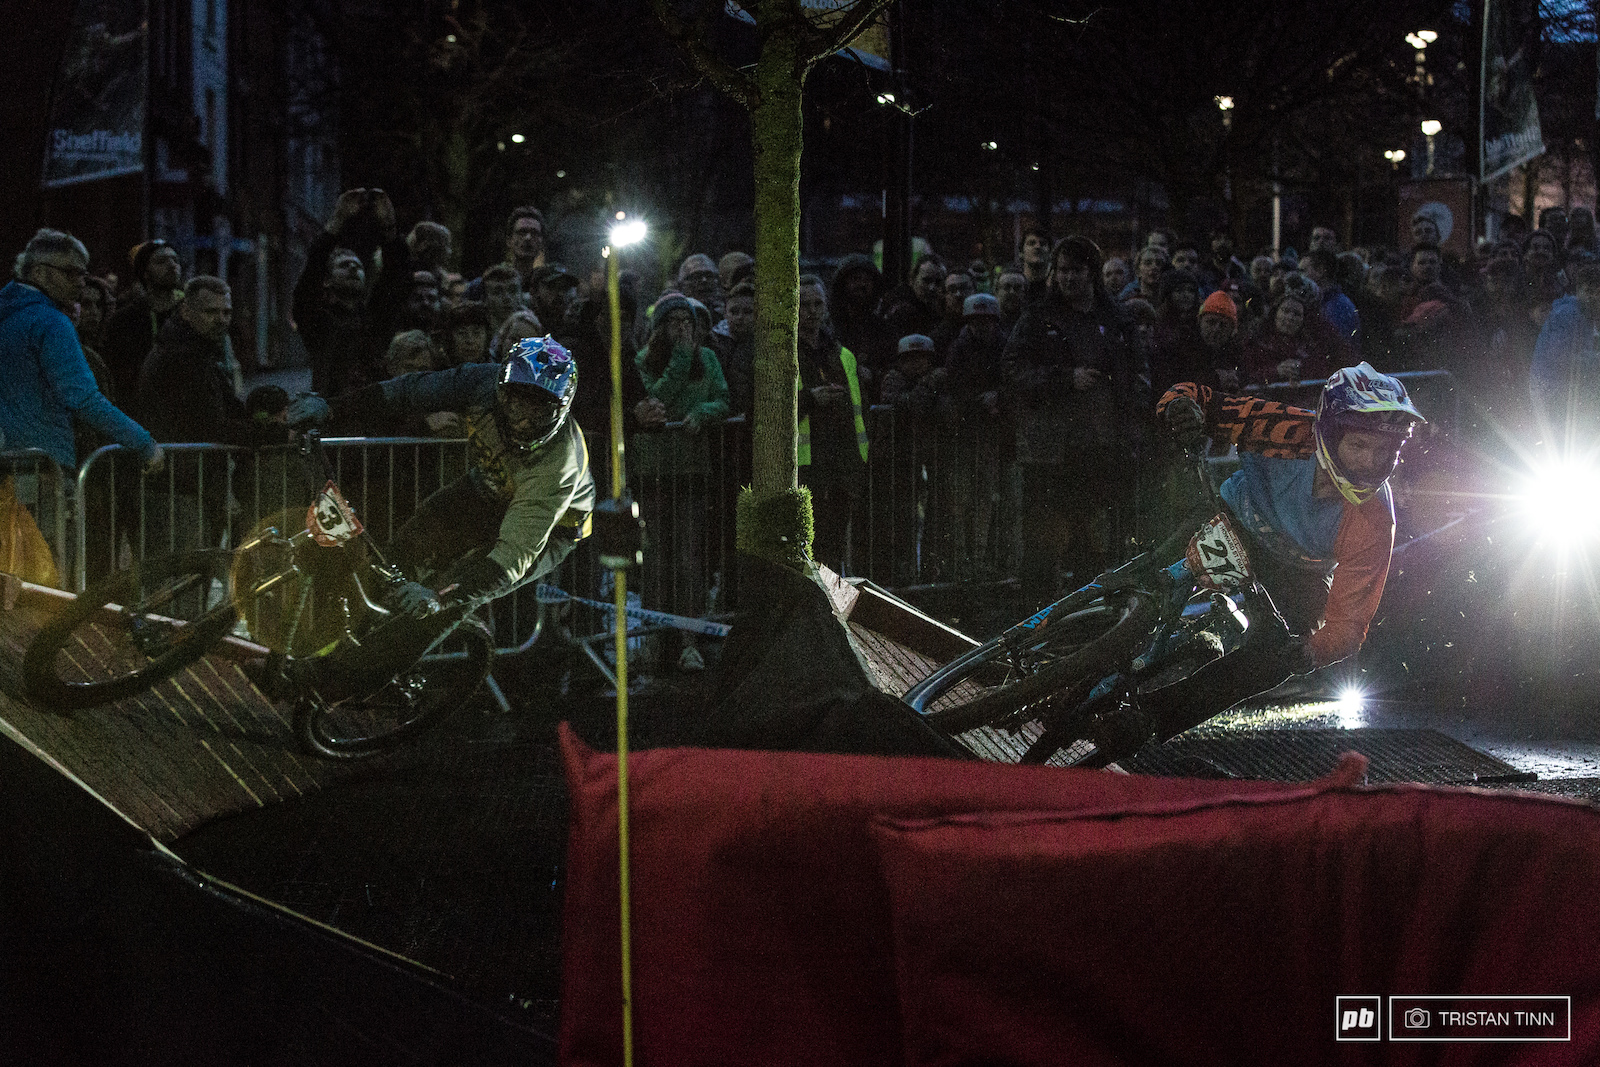 James Swinden and Steve Peat charge the chaos corner in quater finals